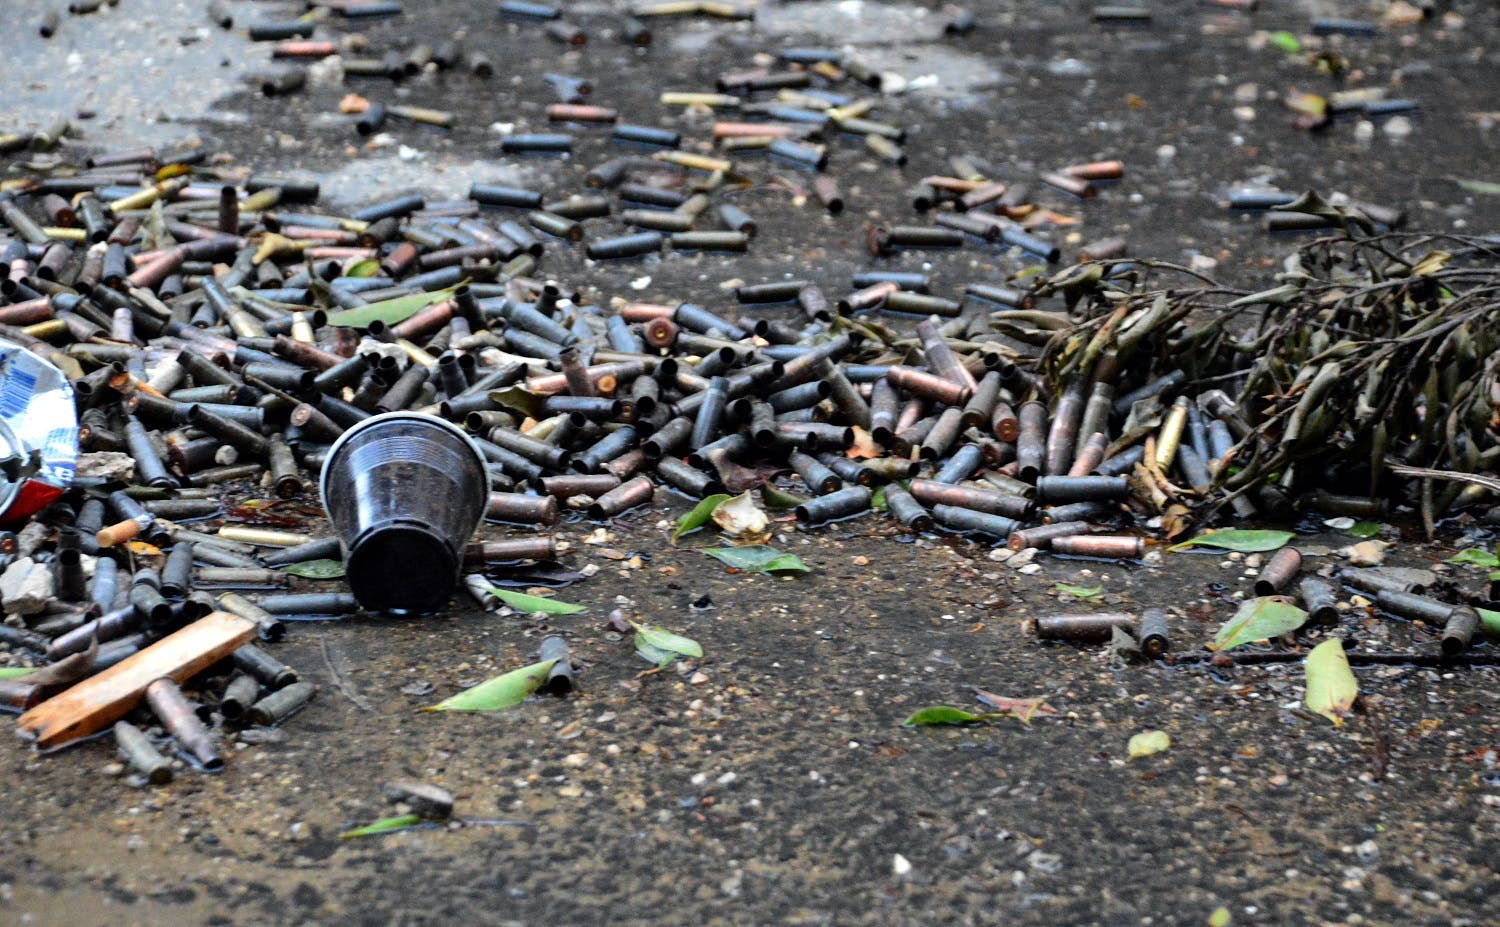 A picture taken on April 12, 2017 shows spent bullet casings lying on the ground at Ain al-Hilweh camp. (AFP)